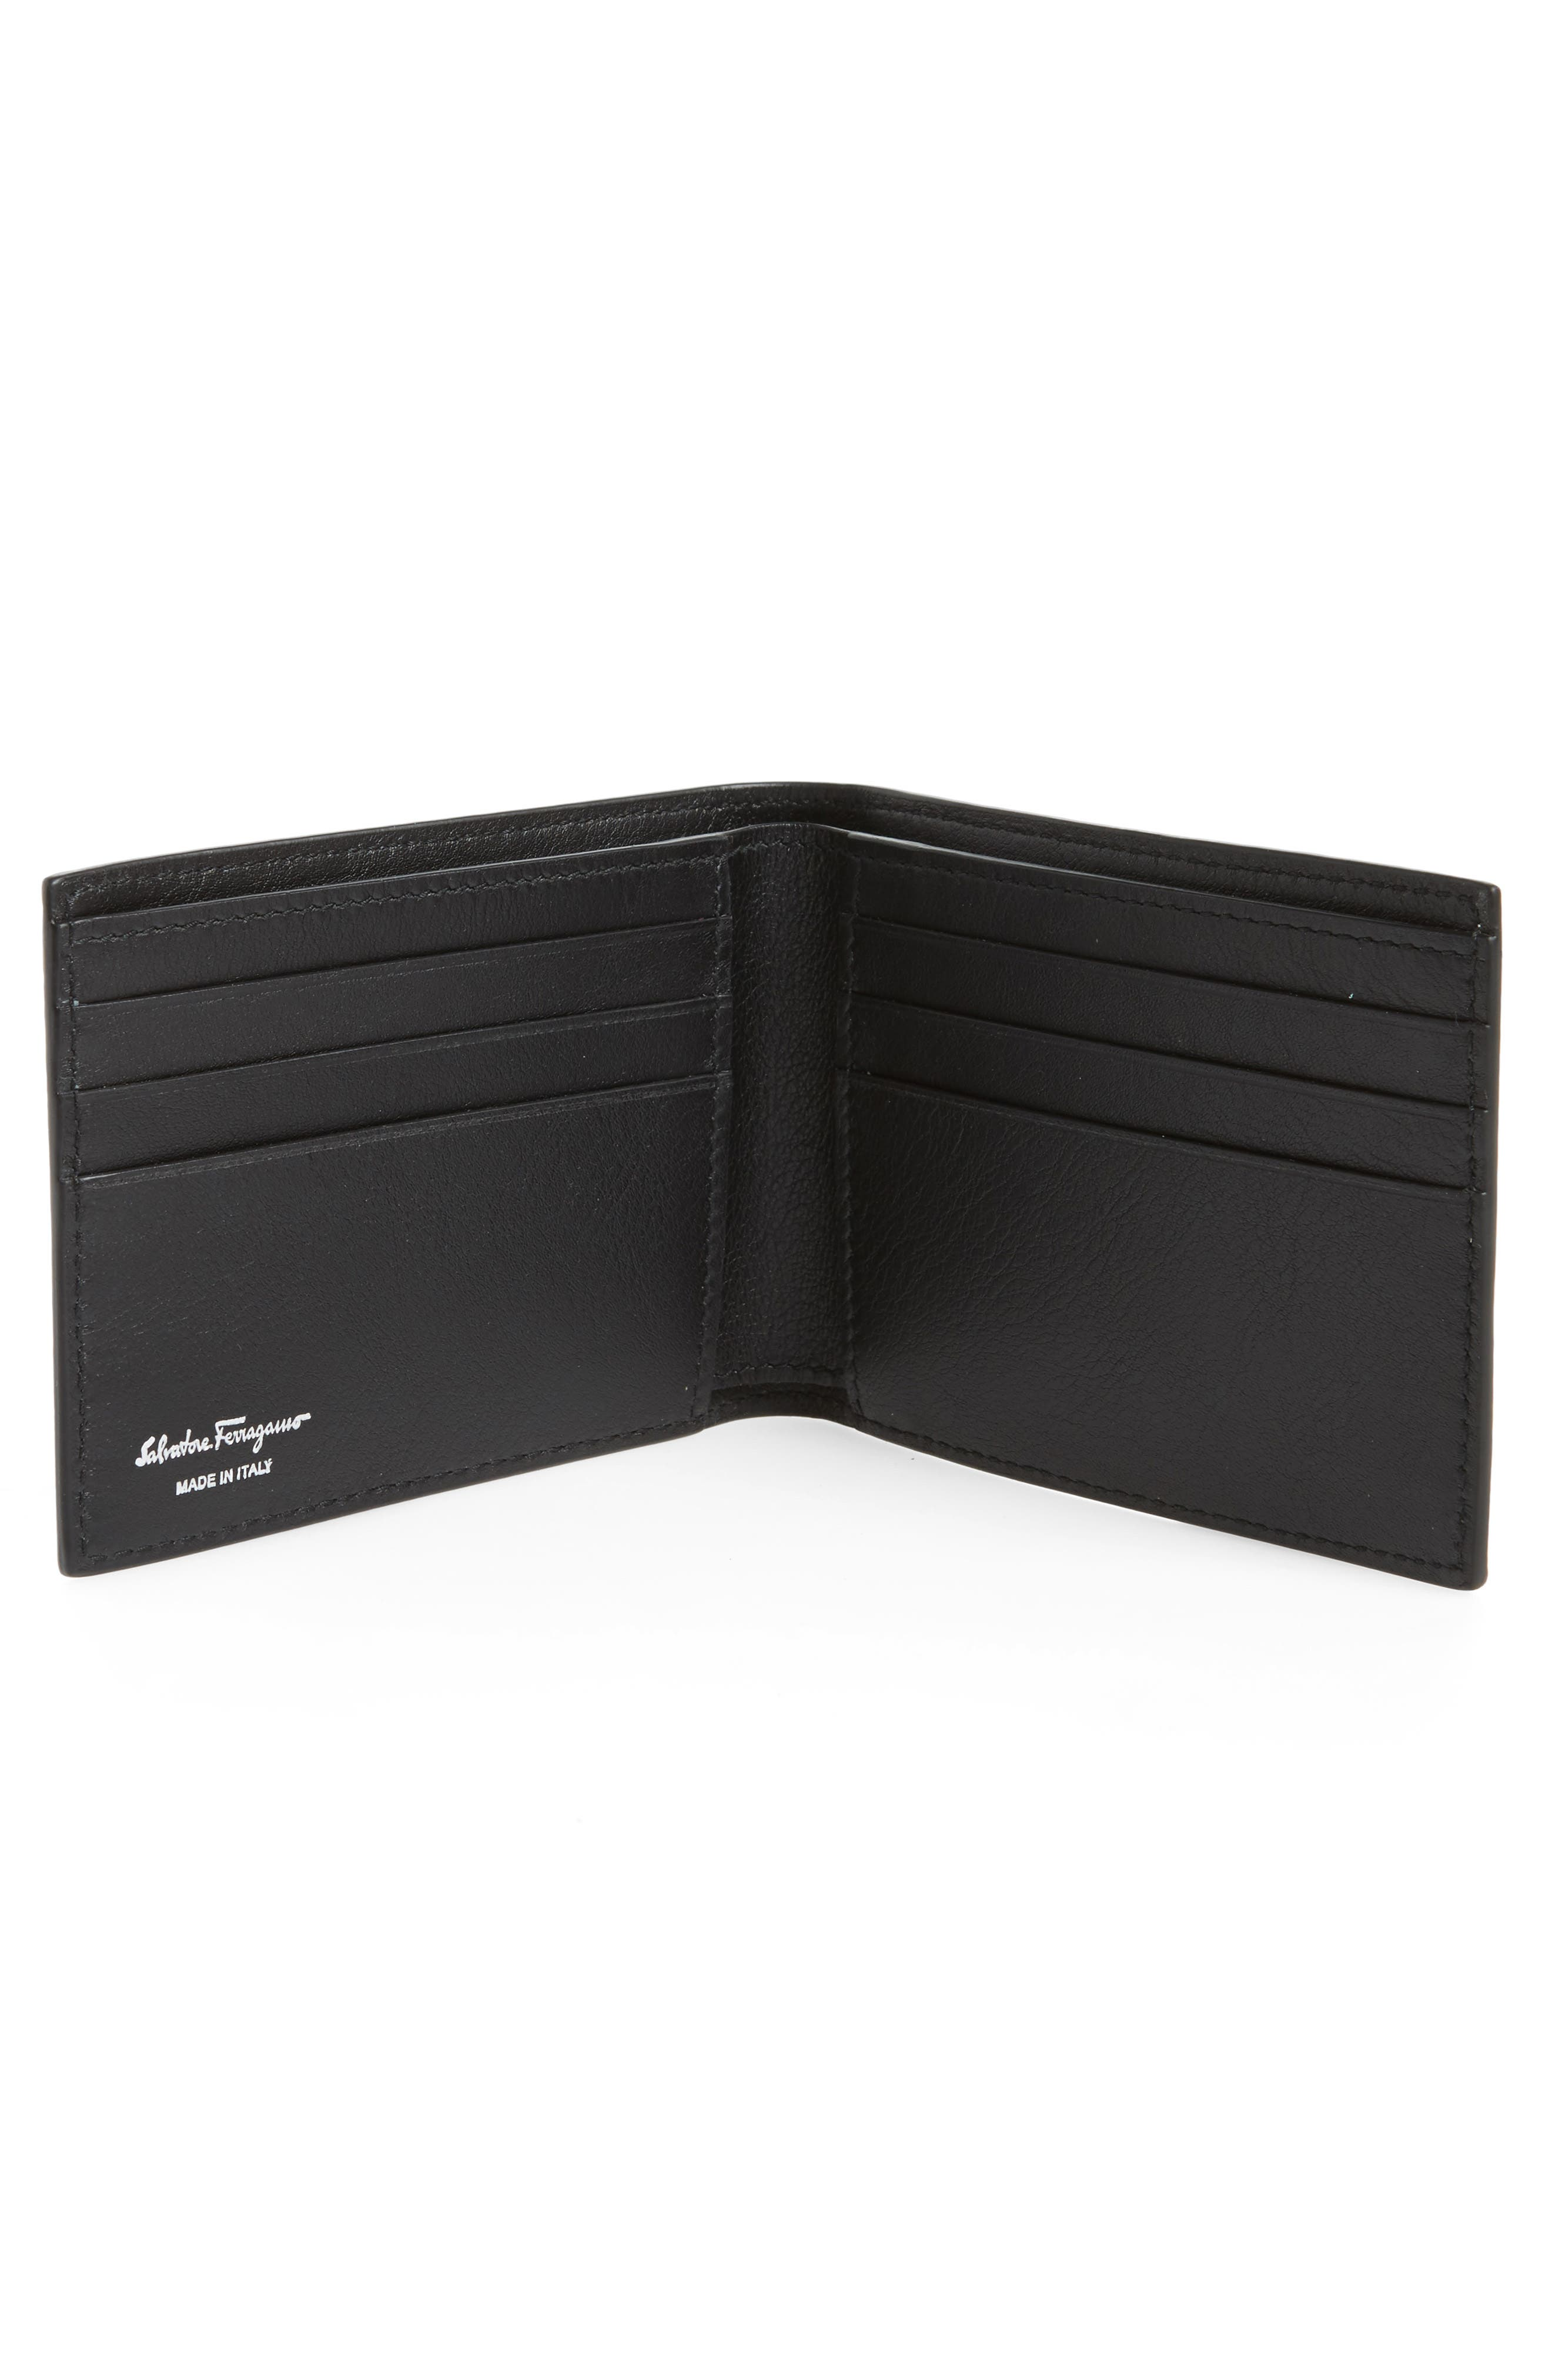 Leather Wallet,                             Alternate thumbnail 2, color,                             Sepia